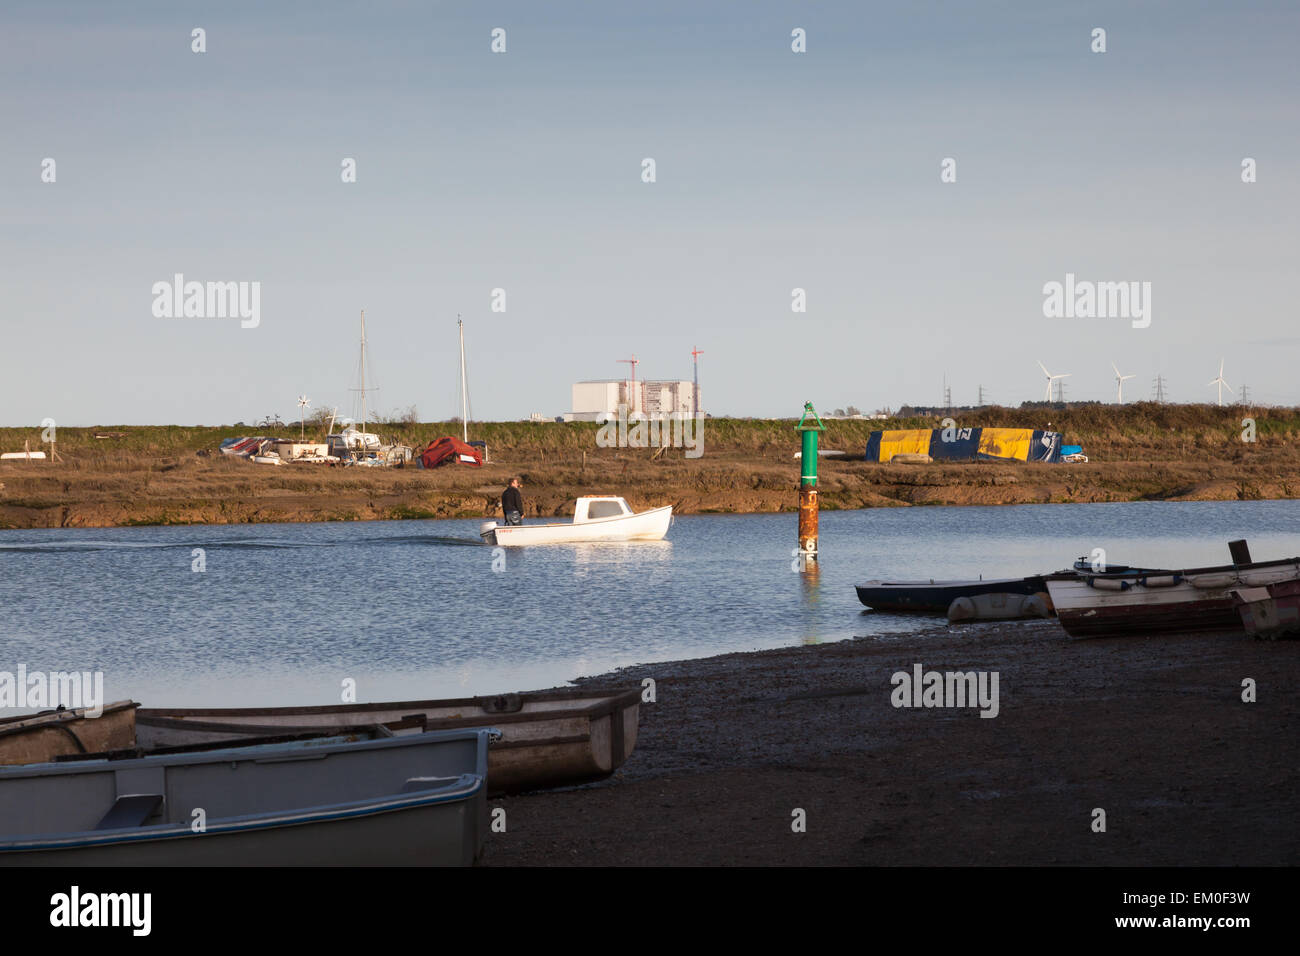 Boats moored on Tollesbury Creek amongst the Saltings, Tollesbury, Essex, UK Stock Photo